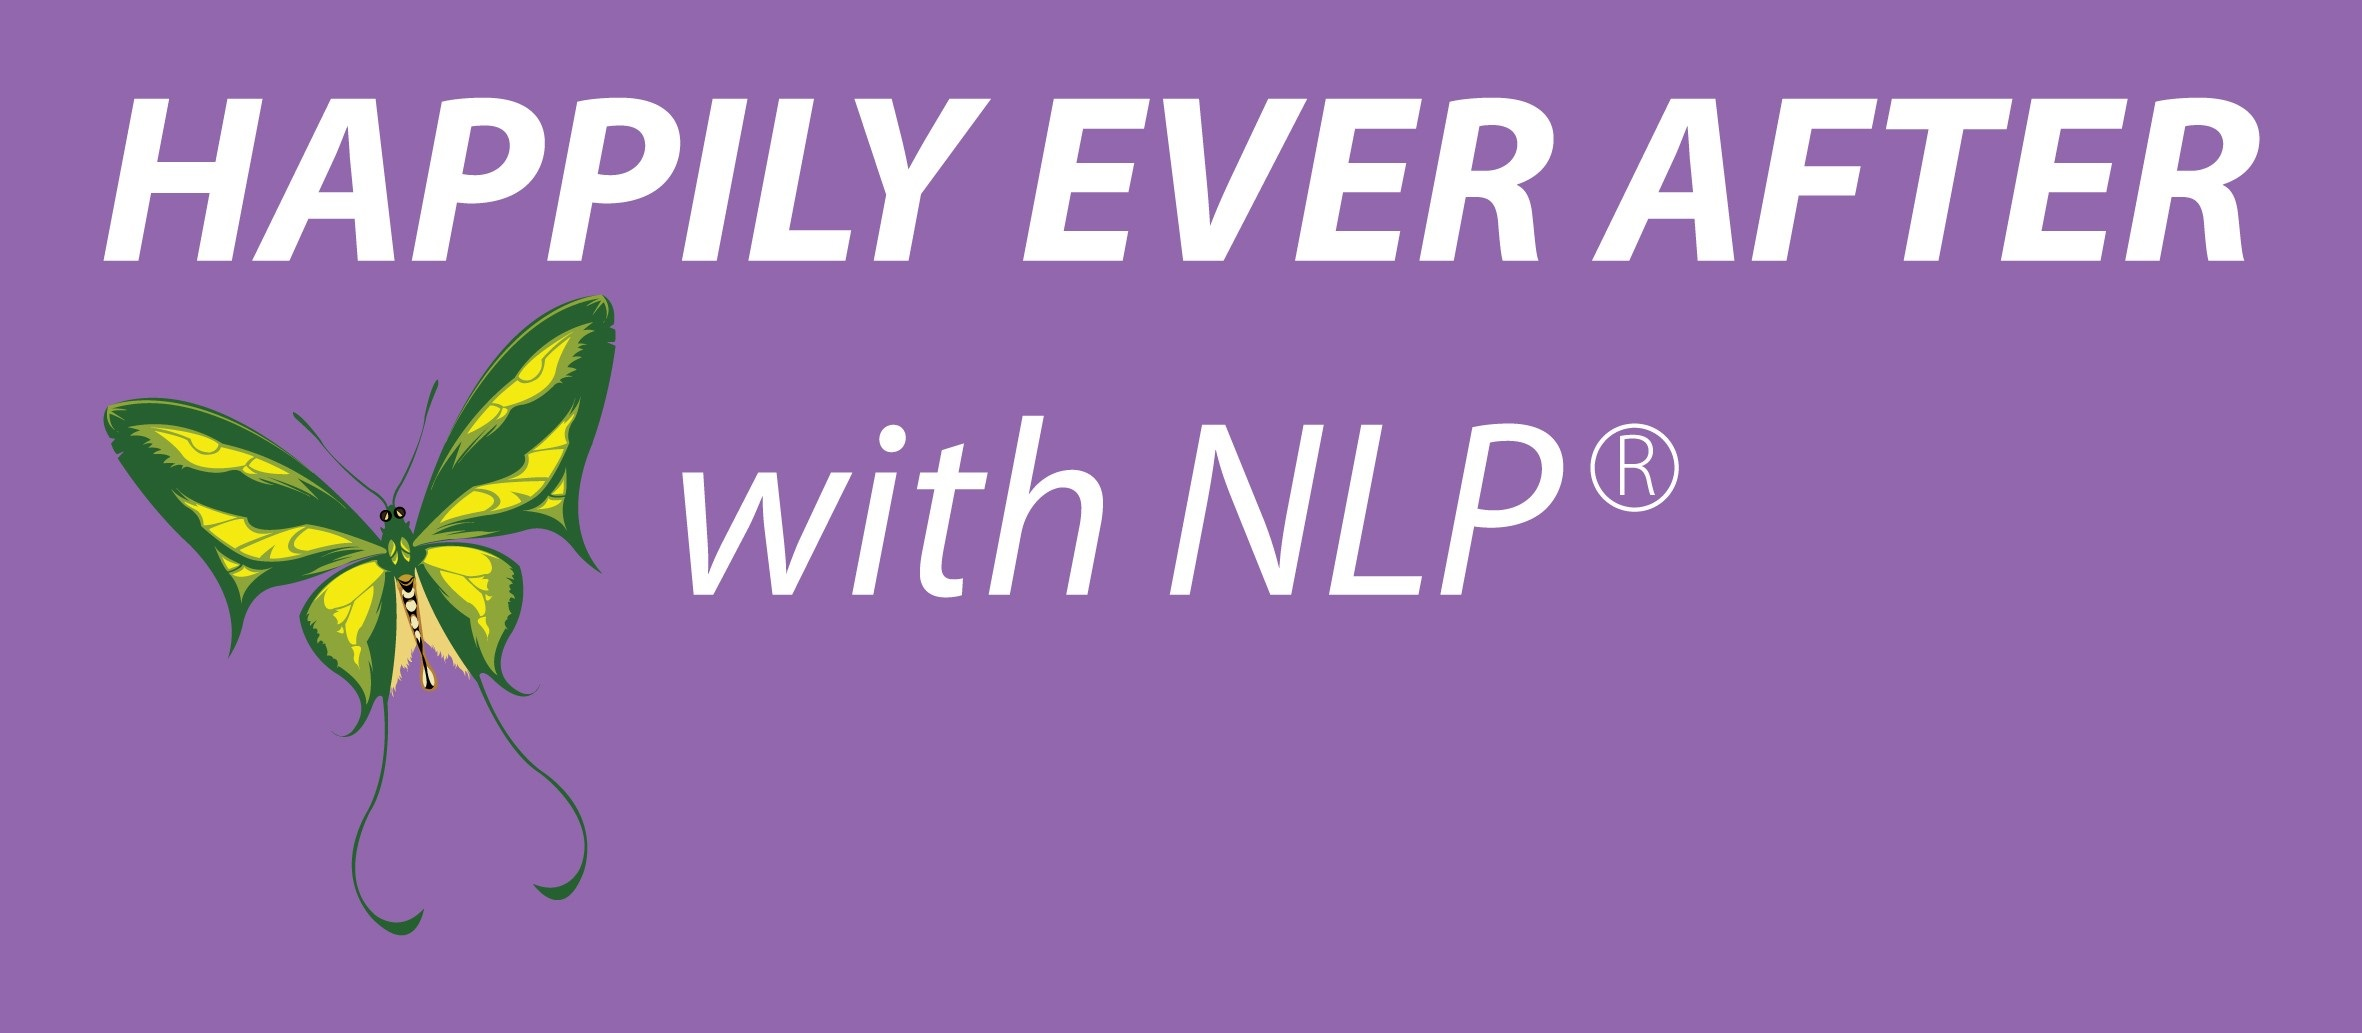 happily ever after with nlp graphic